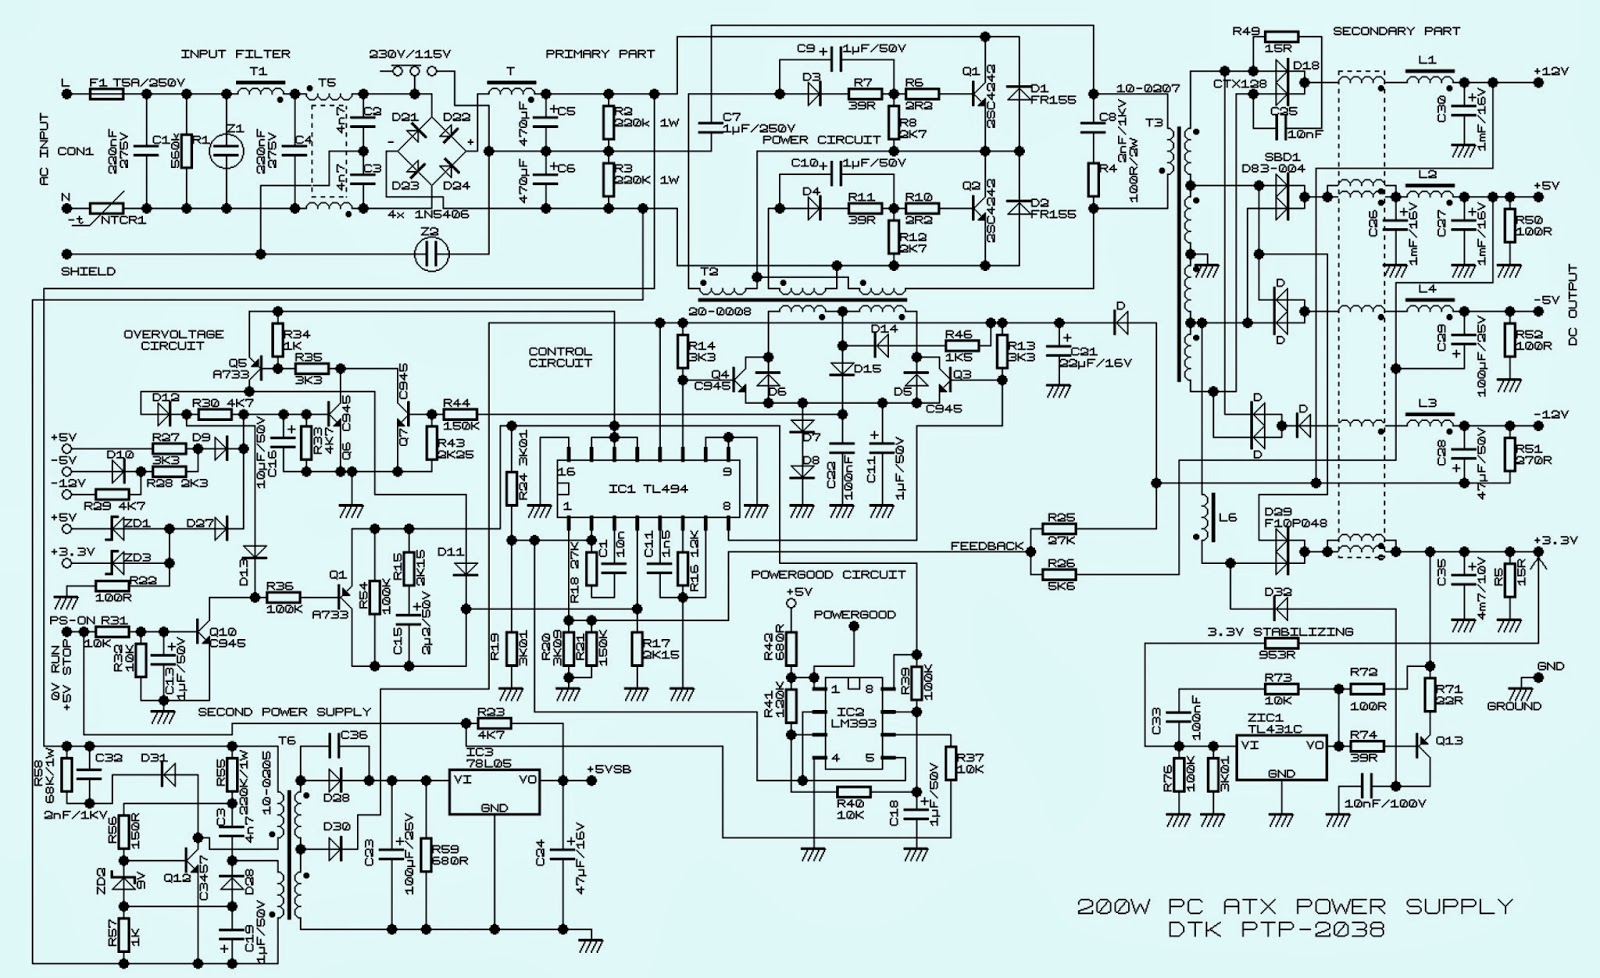 w atx power supply computer schematic circuit diagram 200w atx power supply computer schematic circuit diagram dtk ptp 2038 tl494